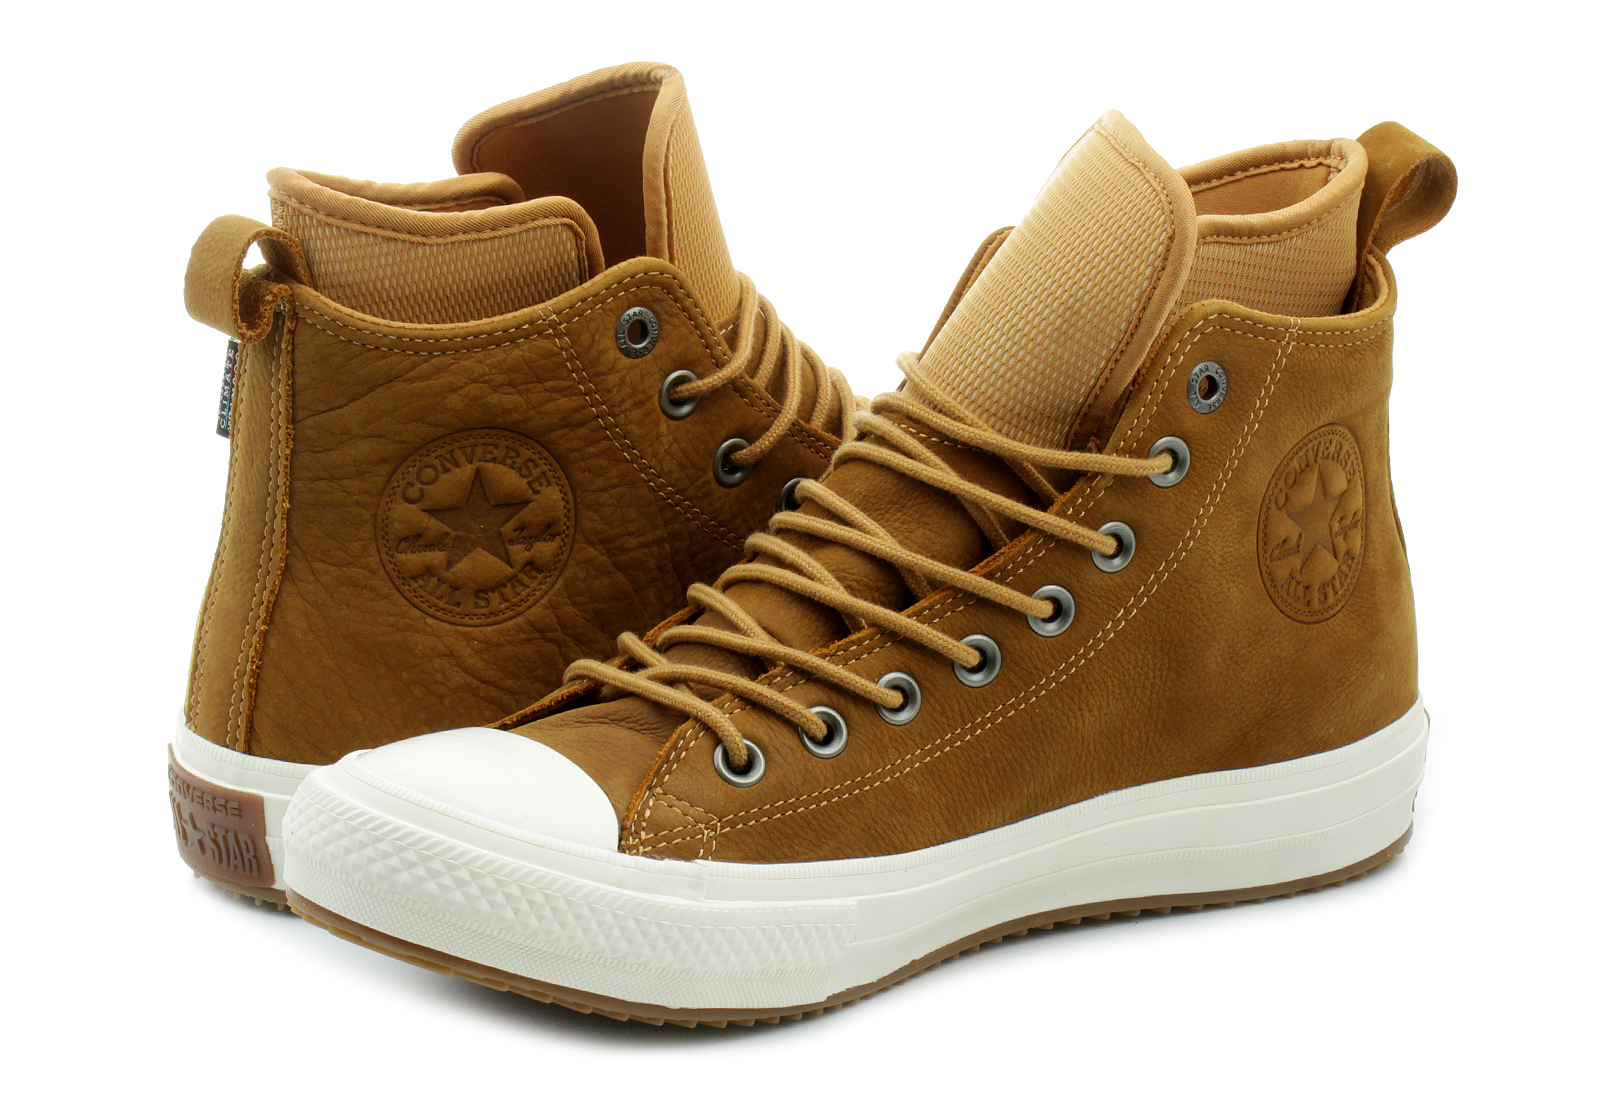 Converse Sneakers - Ct Wp Boot Nubuck - 157461C - Online shop for ... e751c3decd